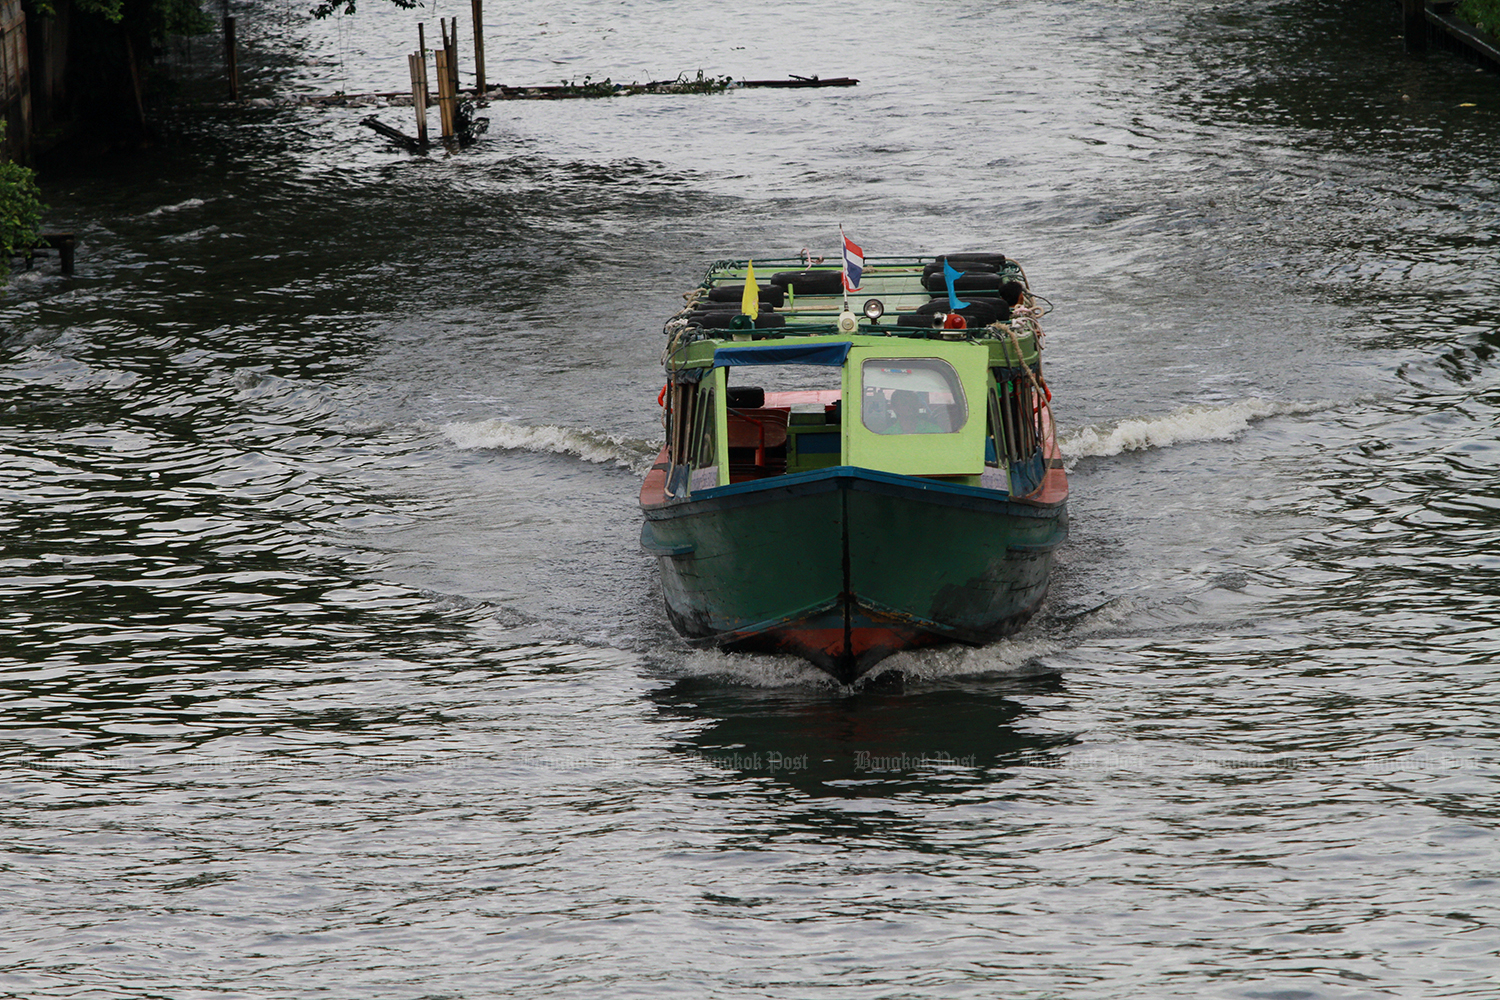 A new boat service between Bangkok's Bang Wa BTS station and Chang pier was launched on Monday. (Photo by Pawat Laopaisarntaksin)